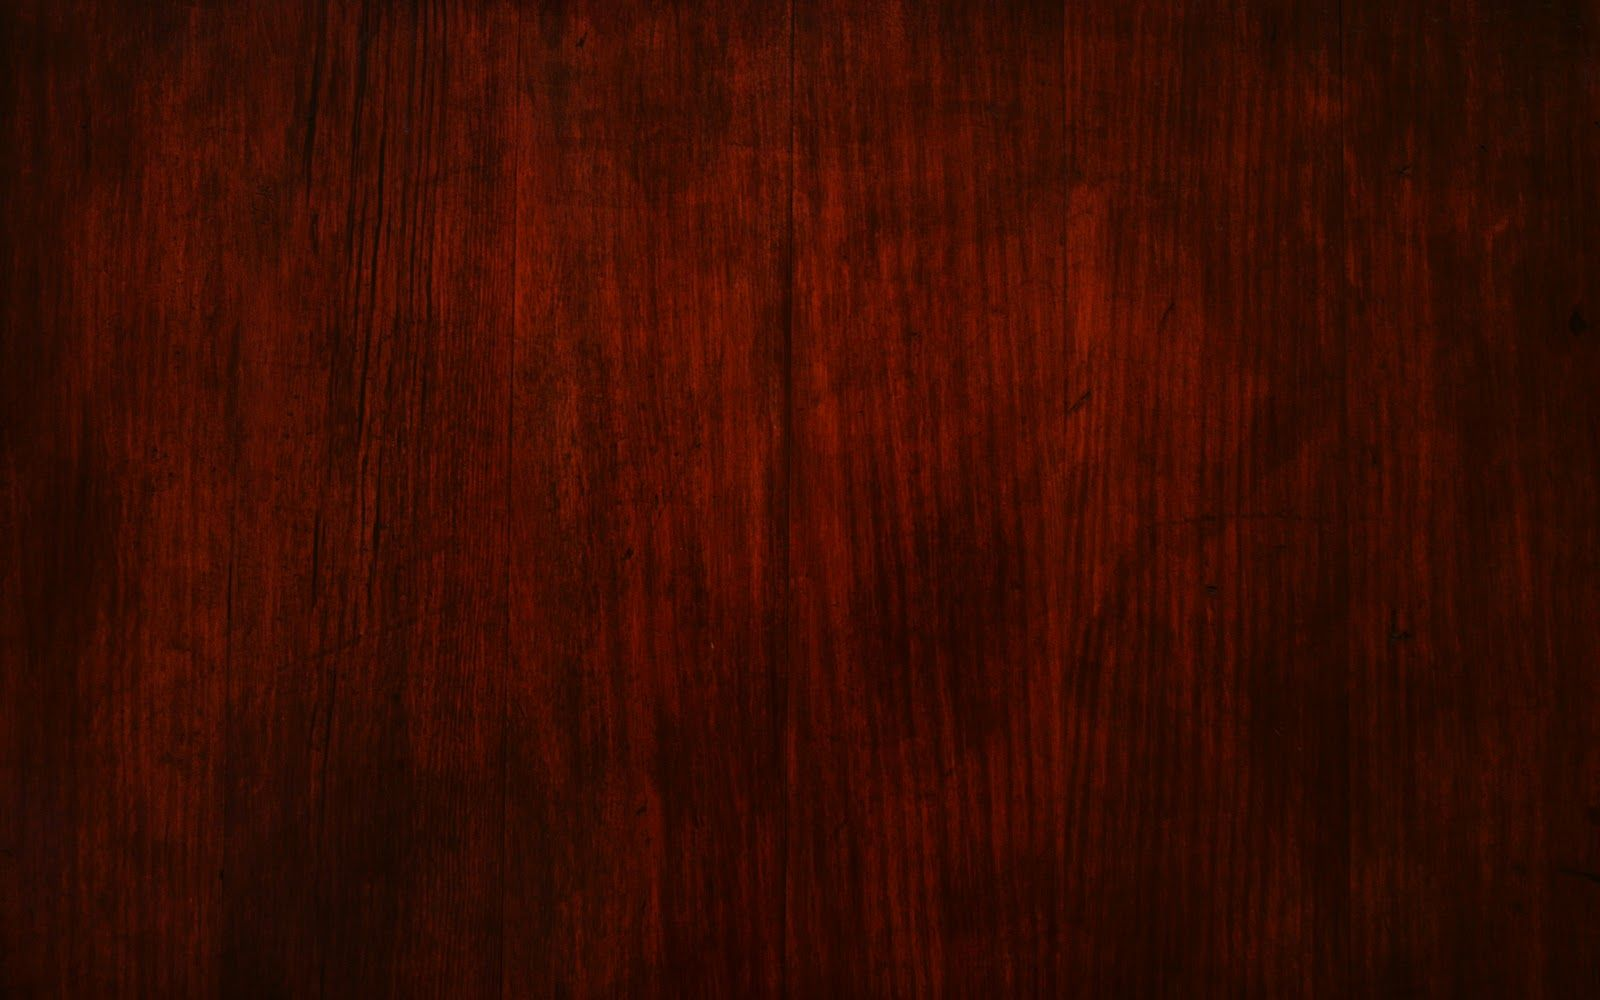 Wood dark background texture wallpaper background iphone 6 - Add Some Awesome Texture To Your Desktop Right Now